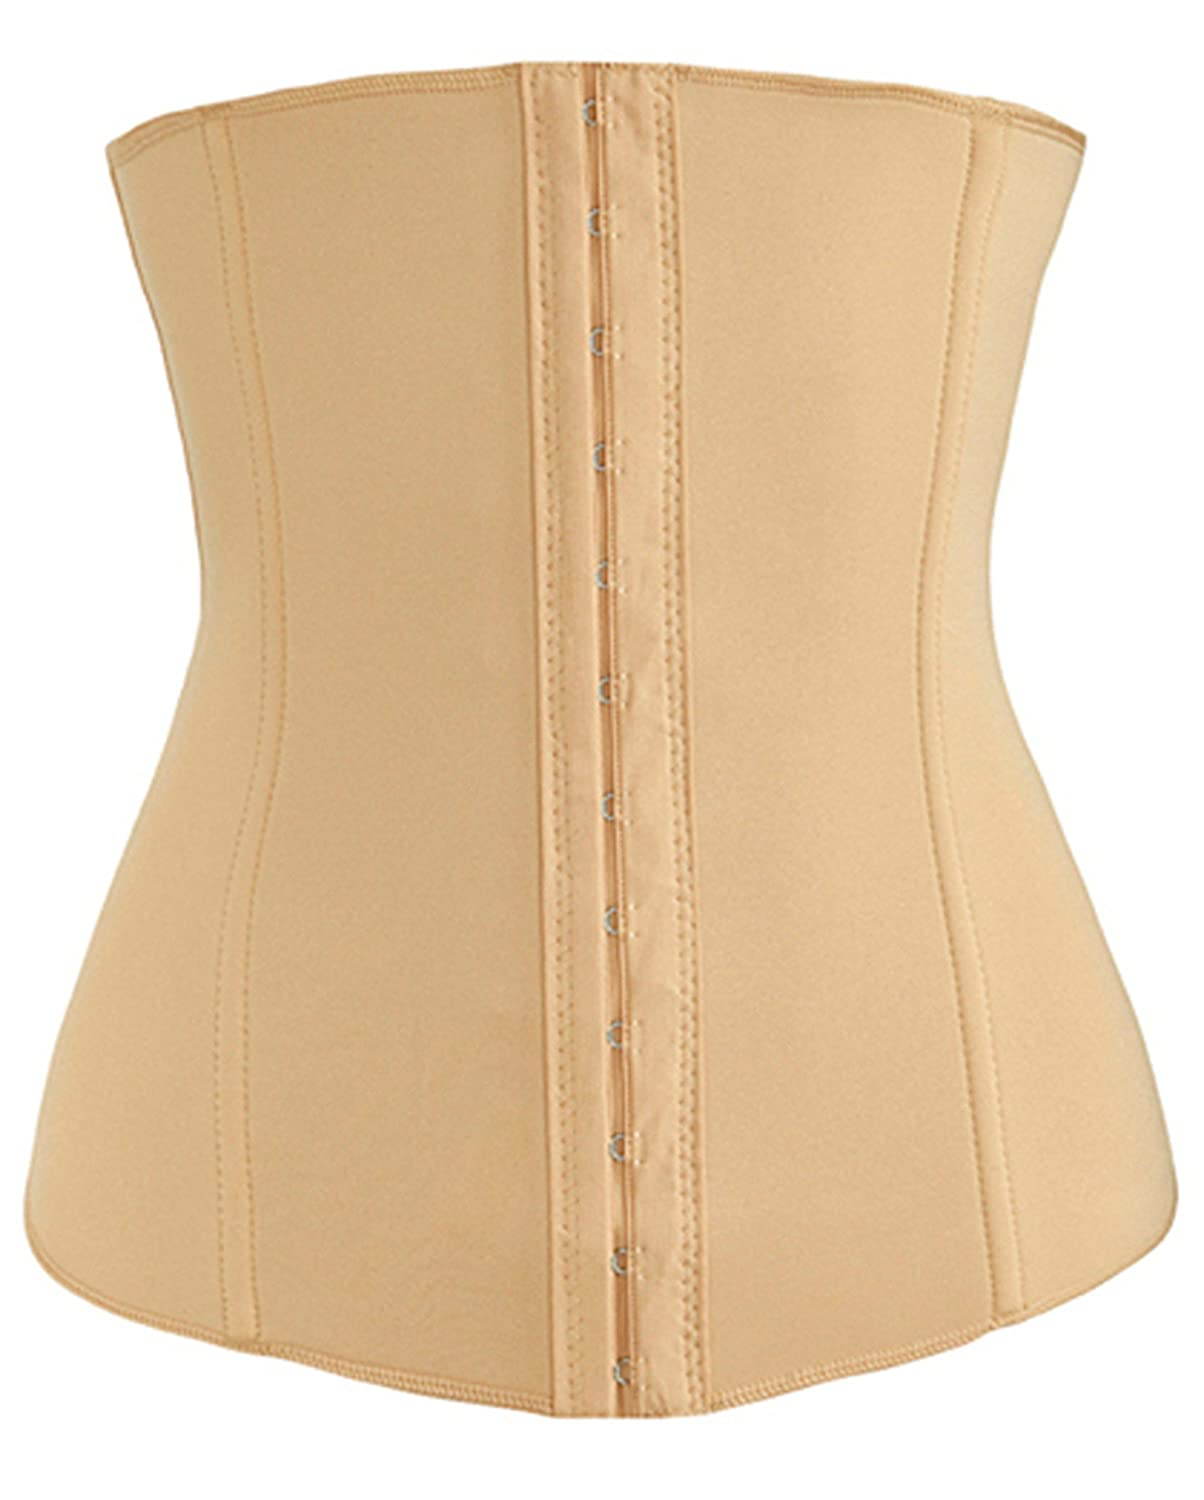 BRABIC Waist Trainer Corset Weight Loss Workout Tummy Control Girdle